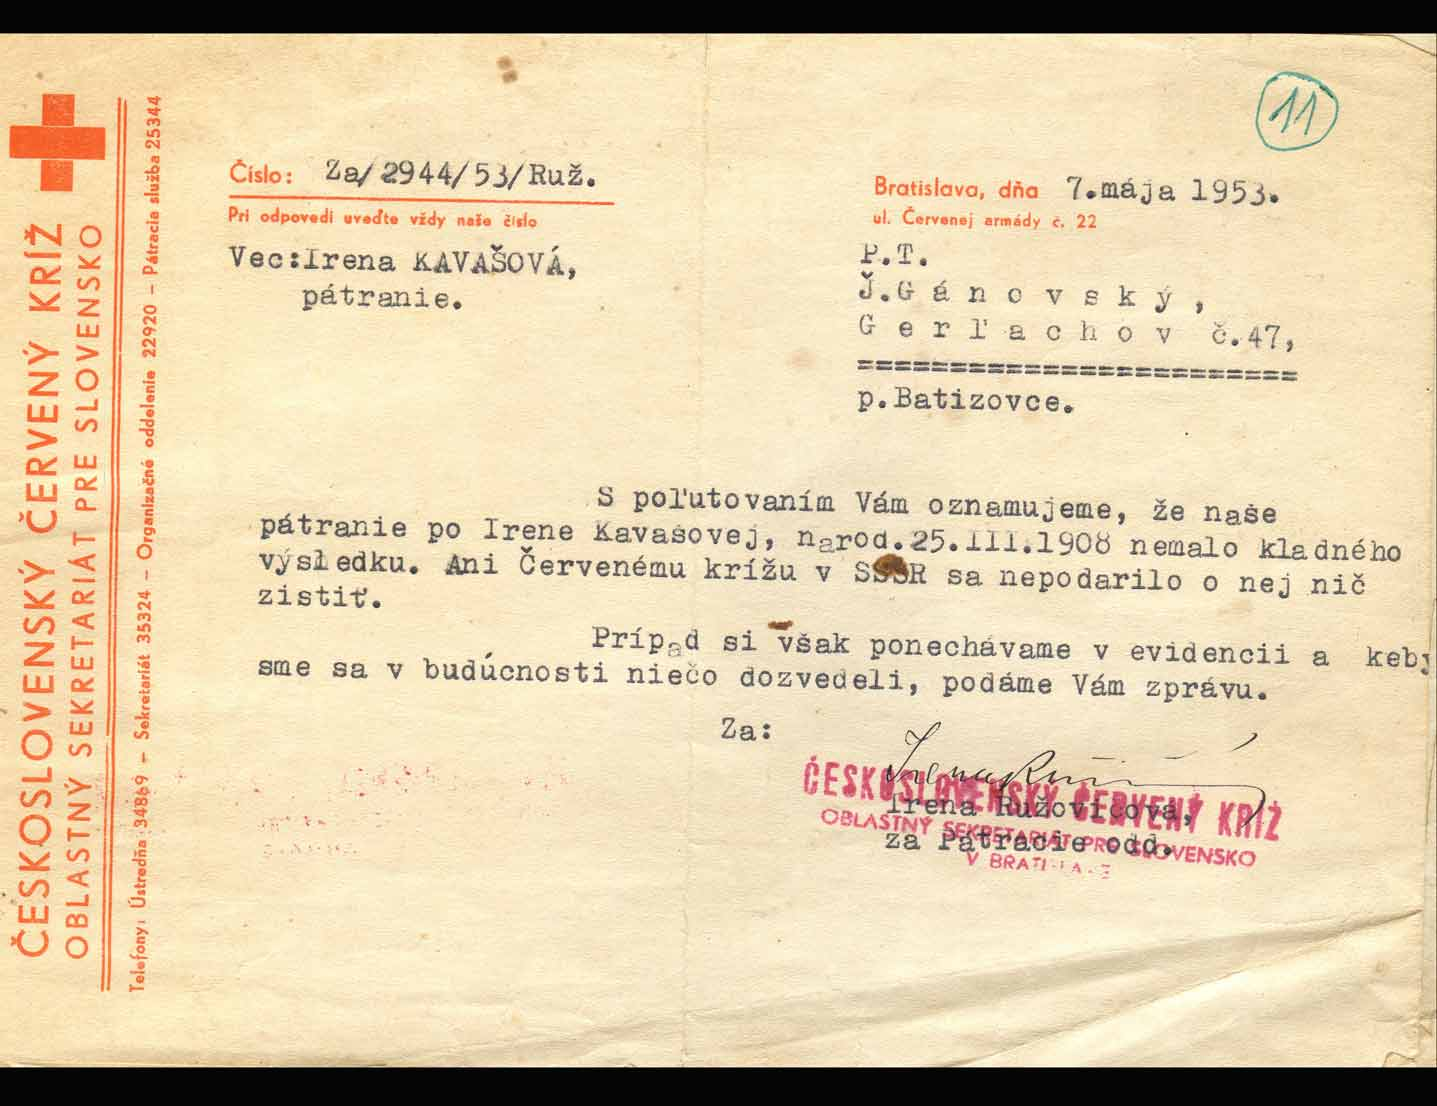 Correspondence from the Red Cross (7 May 1953)   saying that Irena had not been found